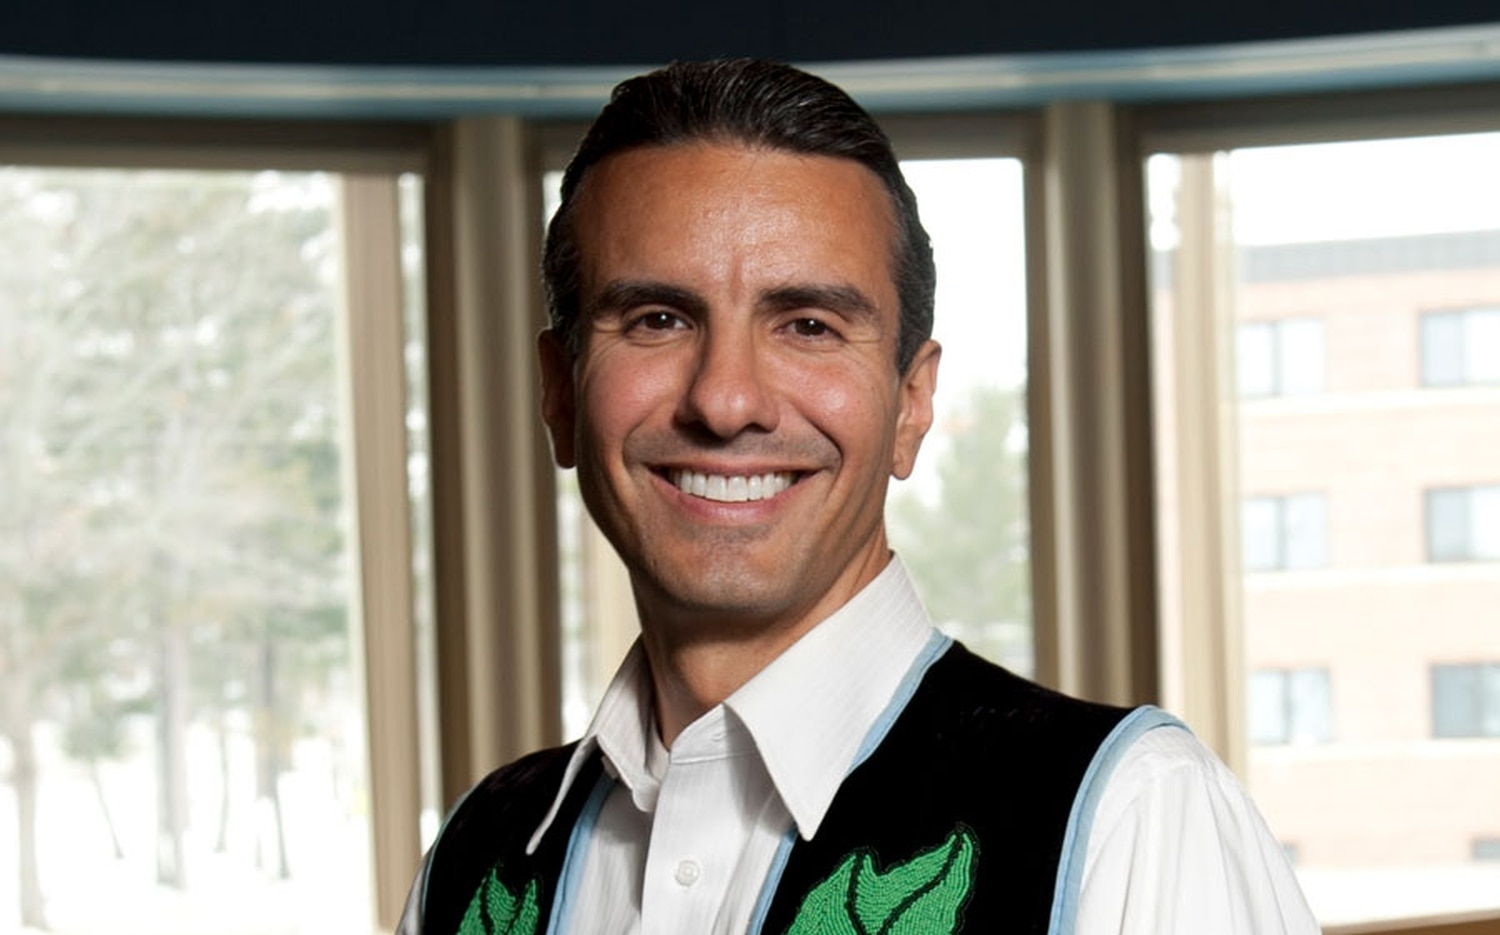 Anton Treuer leads the Ojibwe language revitalization efforts at Bemidji State University and helps other programs across Minnesota.